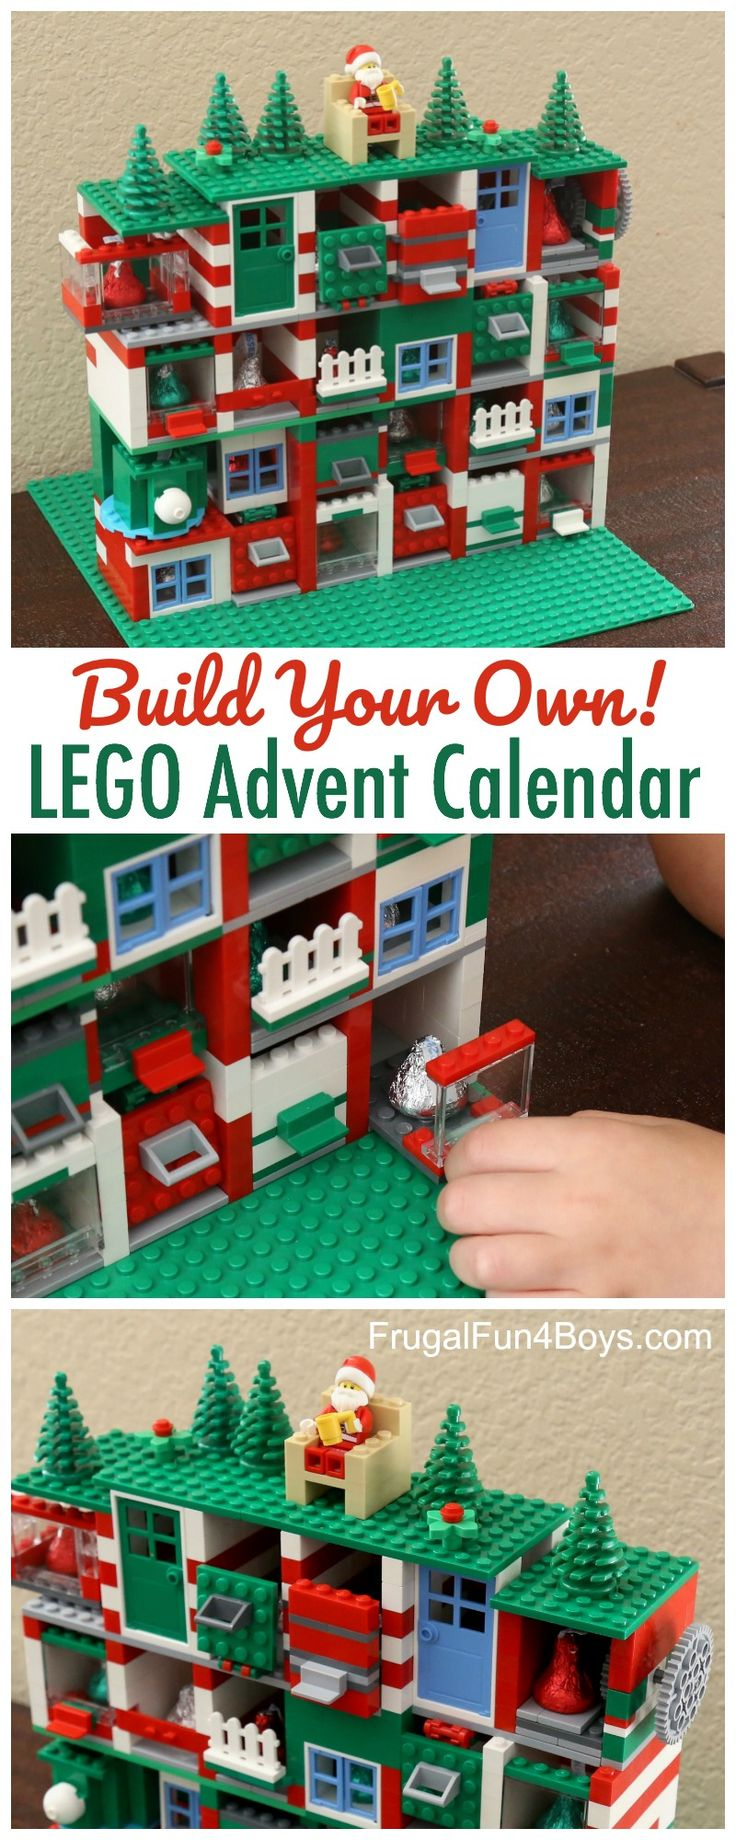 Build Your Own LEGo Advent Calendar - with bricks you already have. 24 doors that open, with candy inside! What a fun idea!